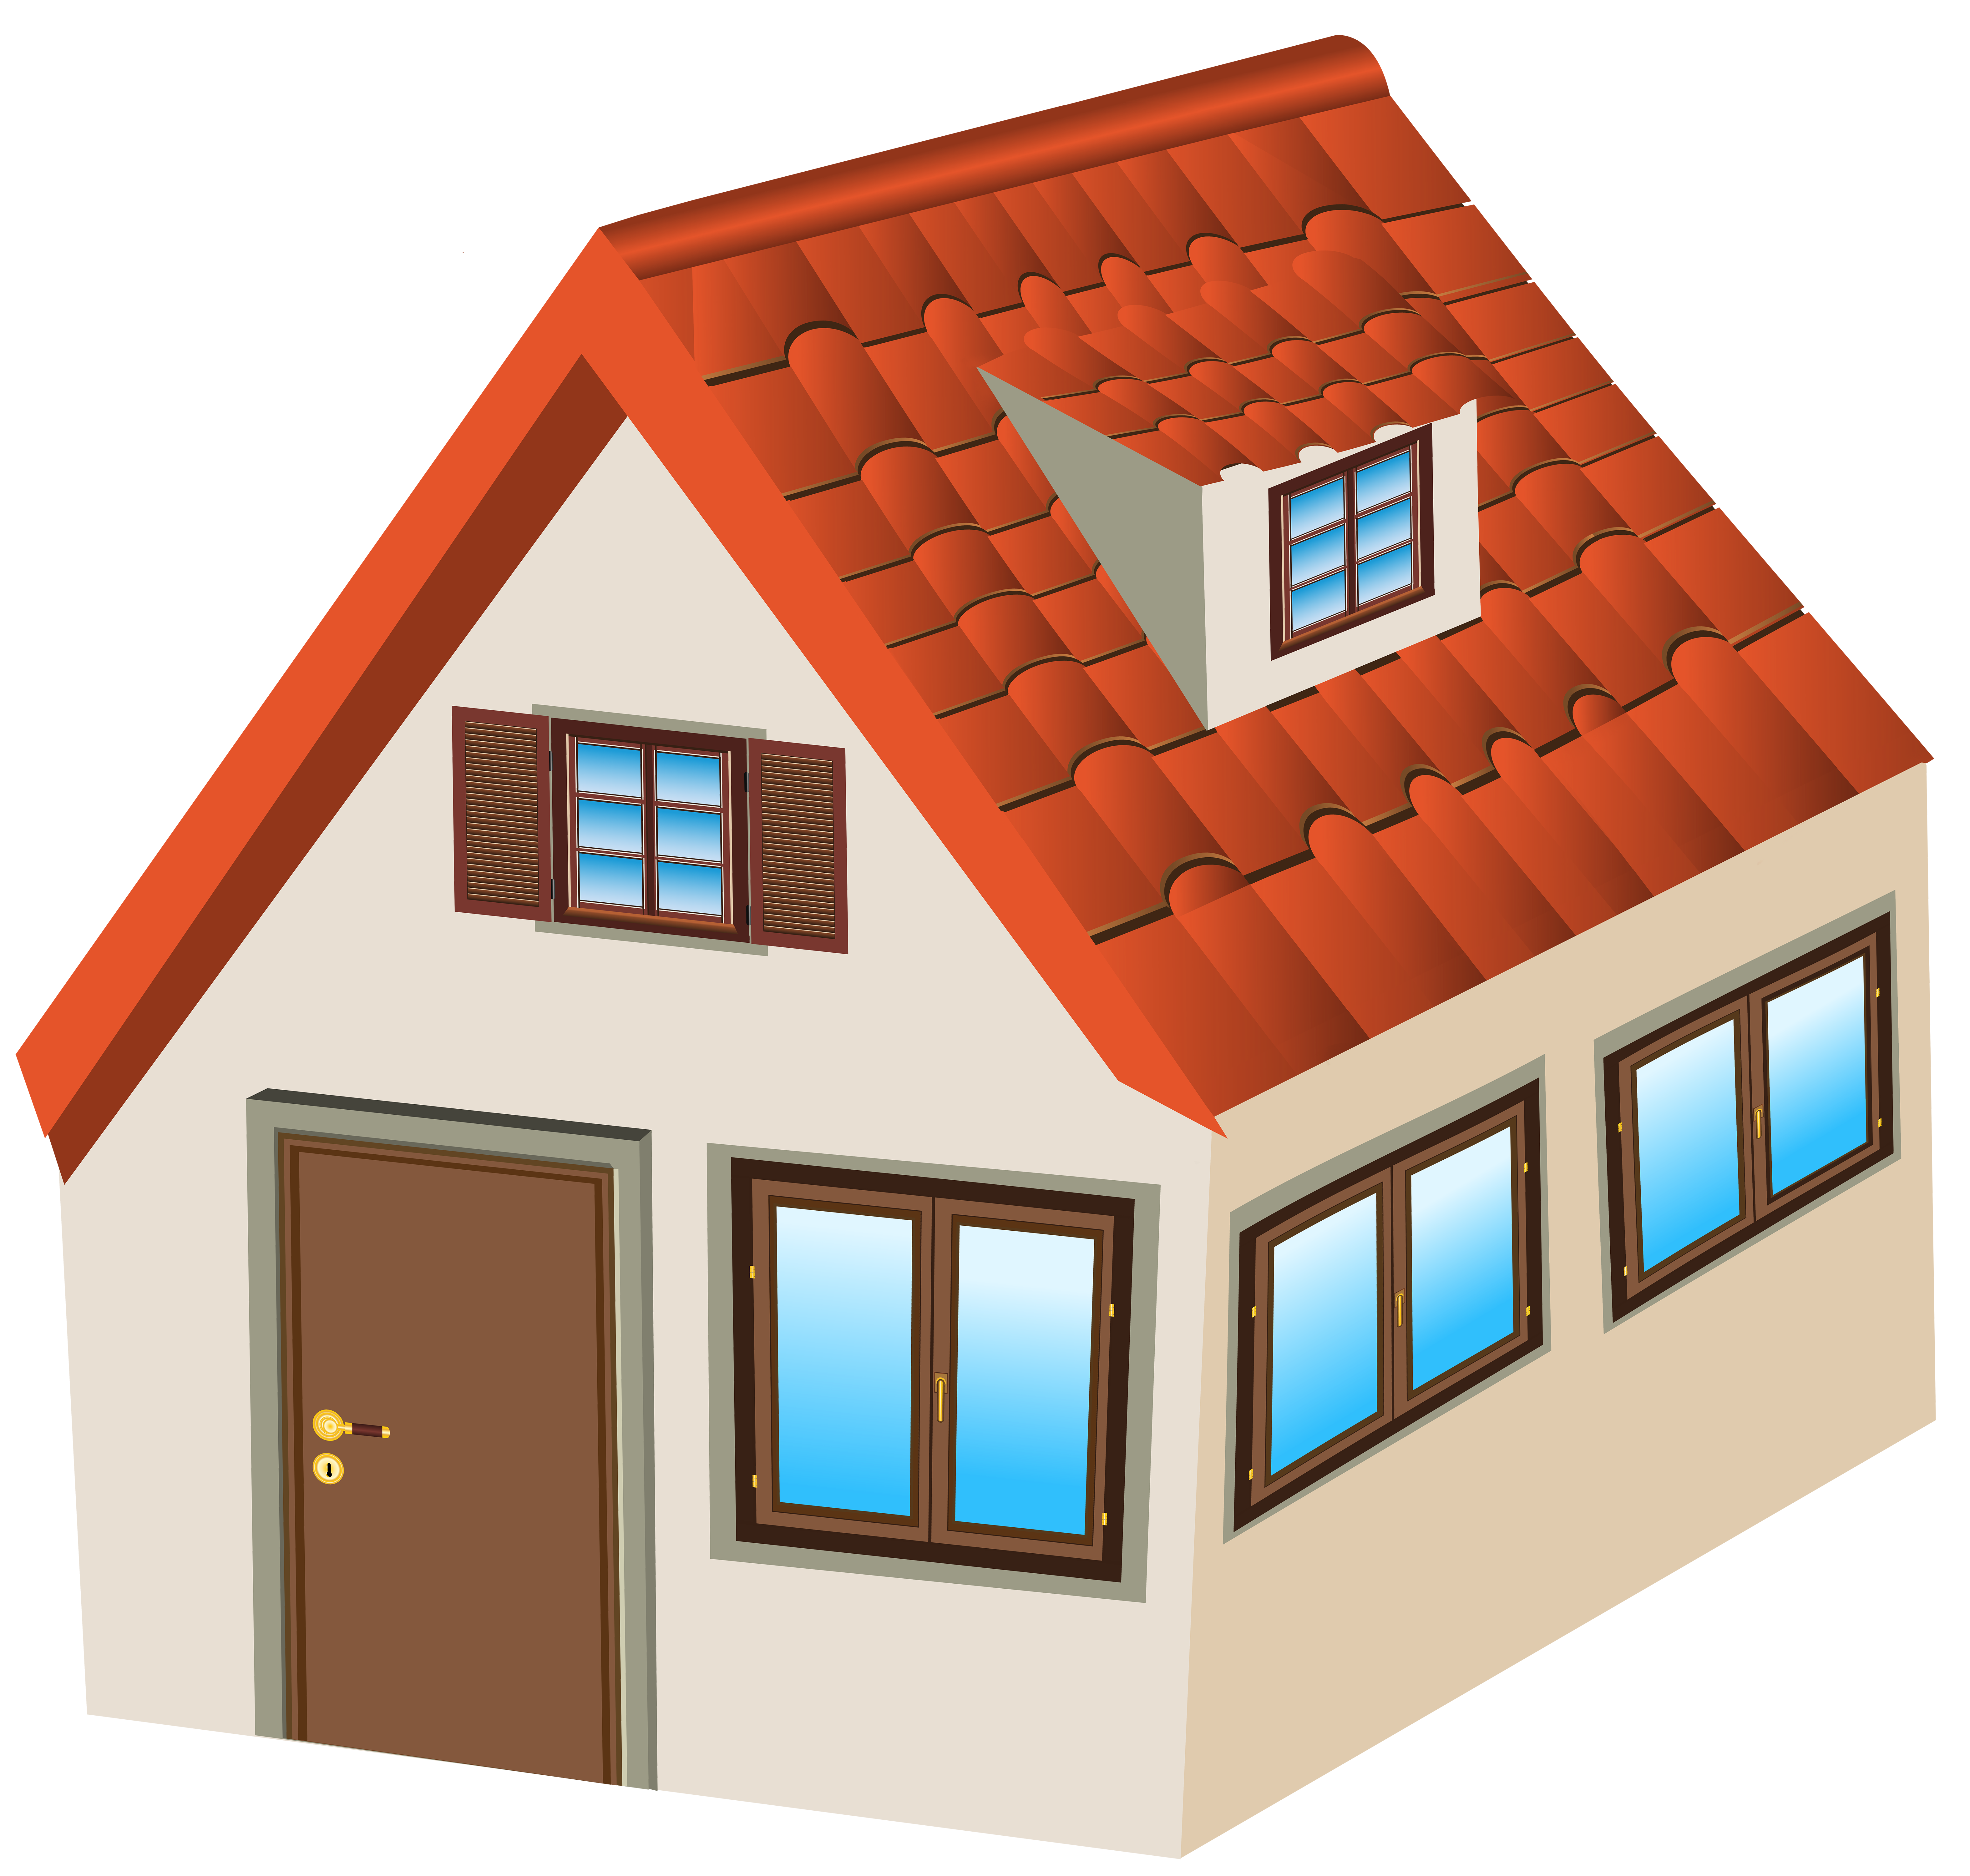 Png clip art best. House clipart room